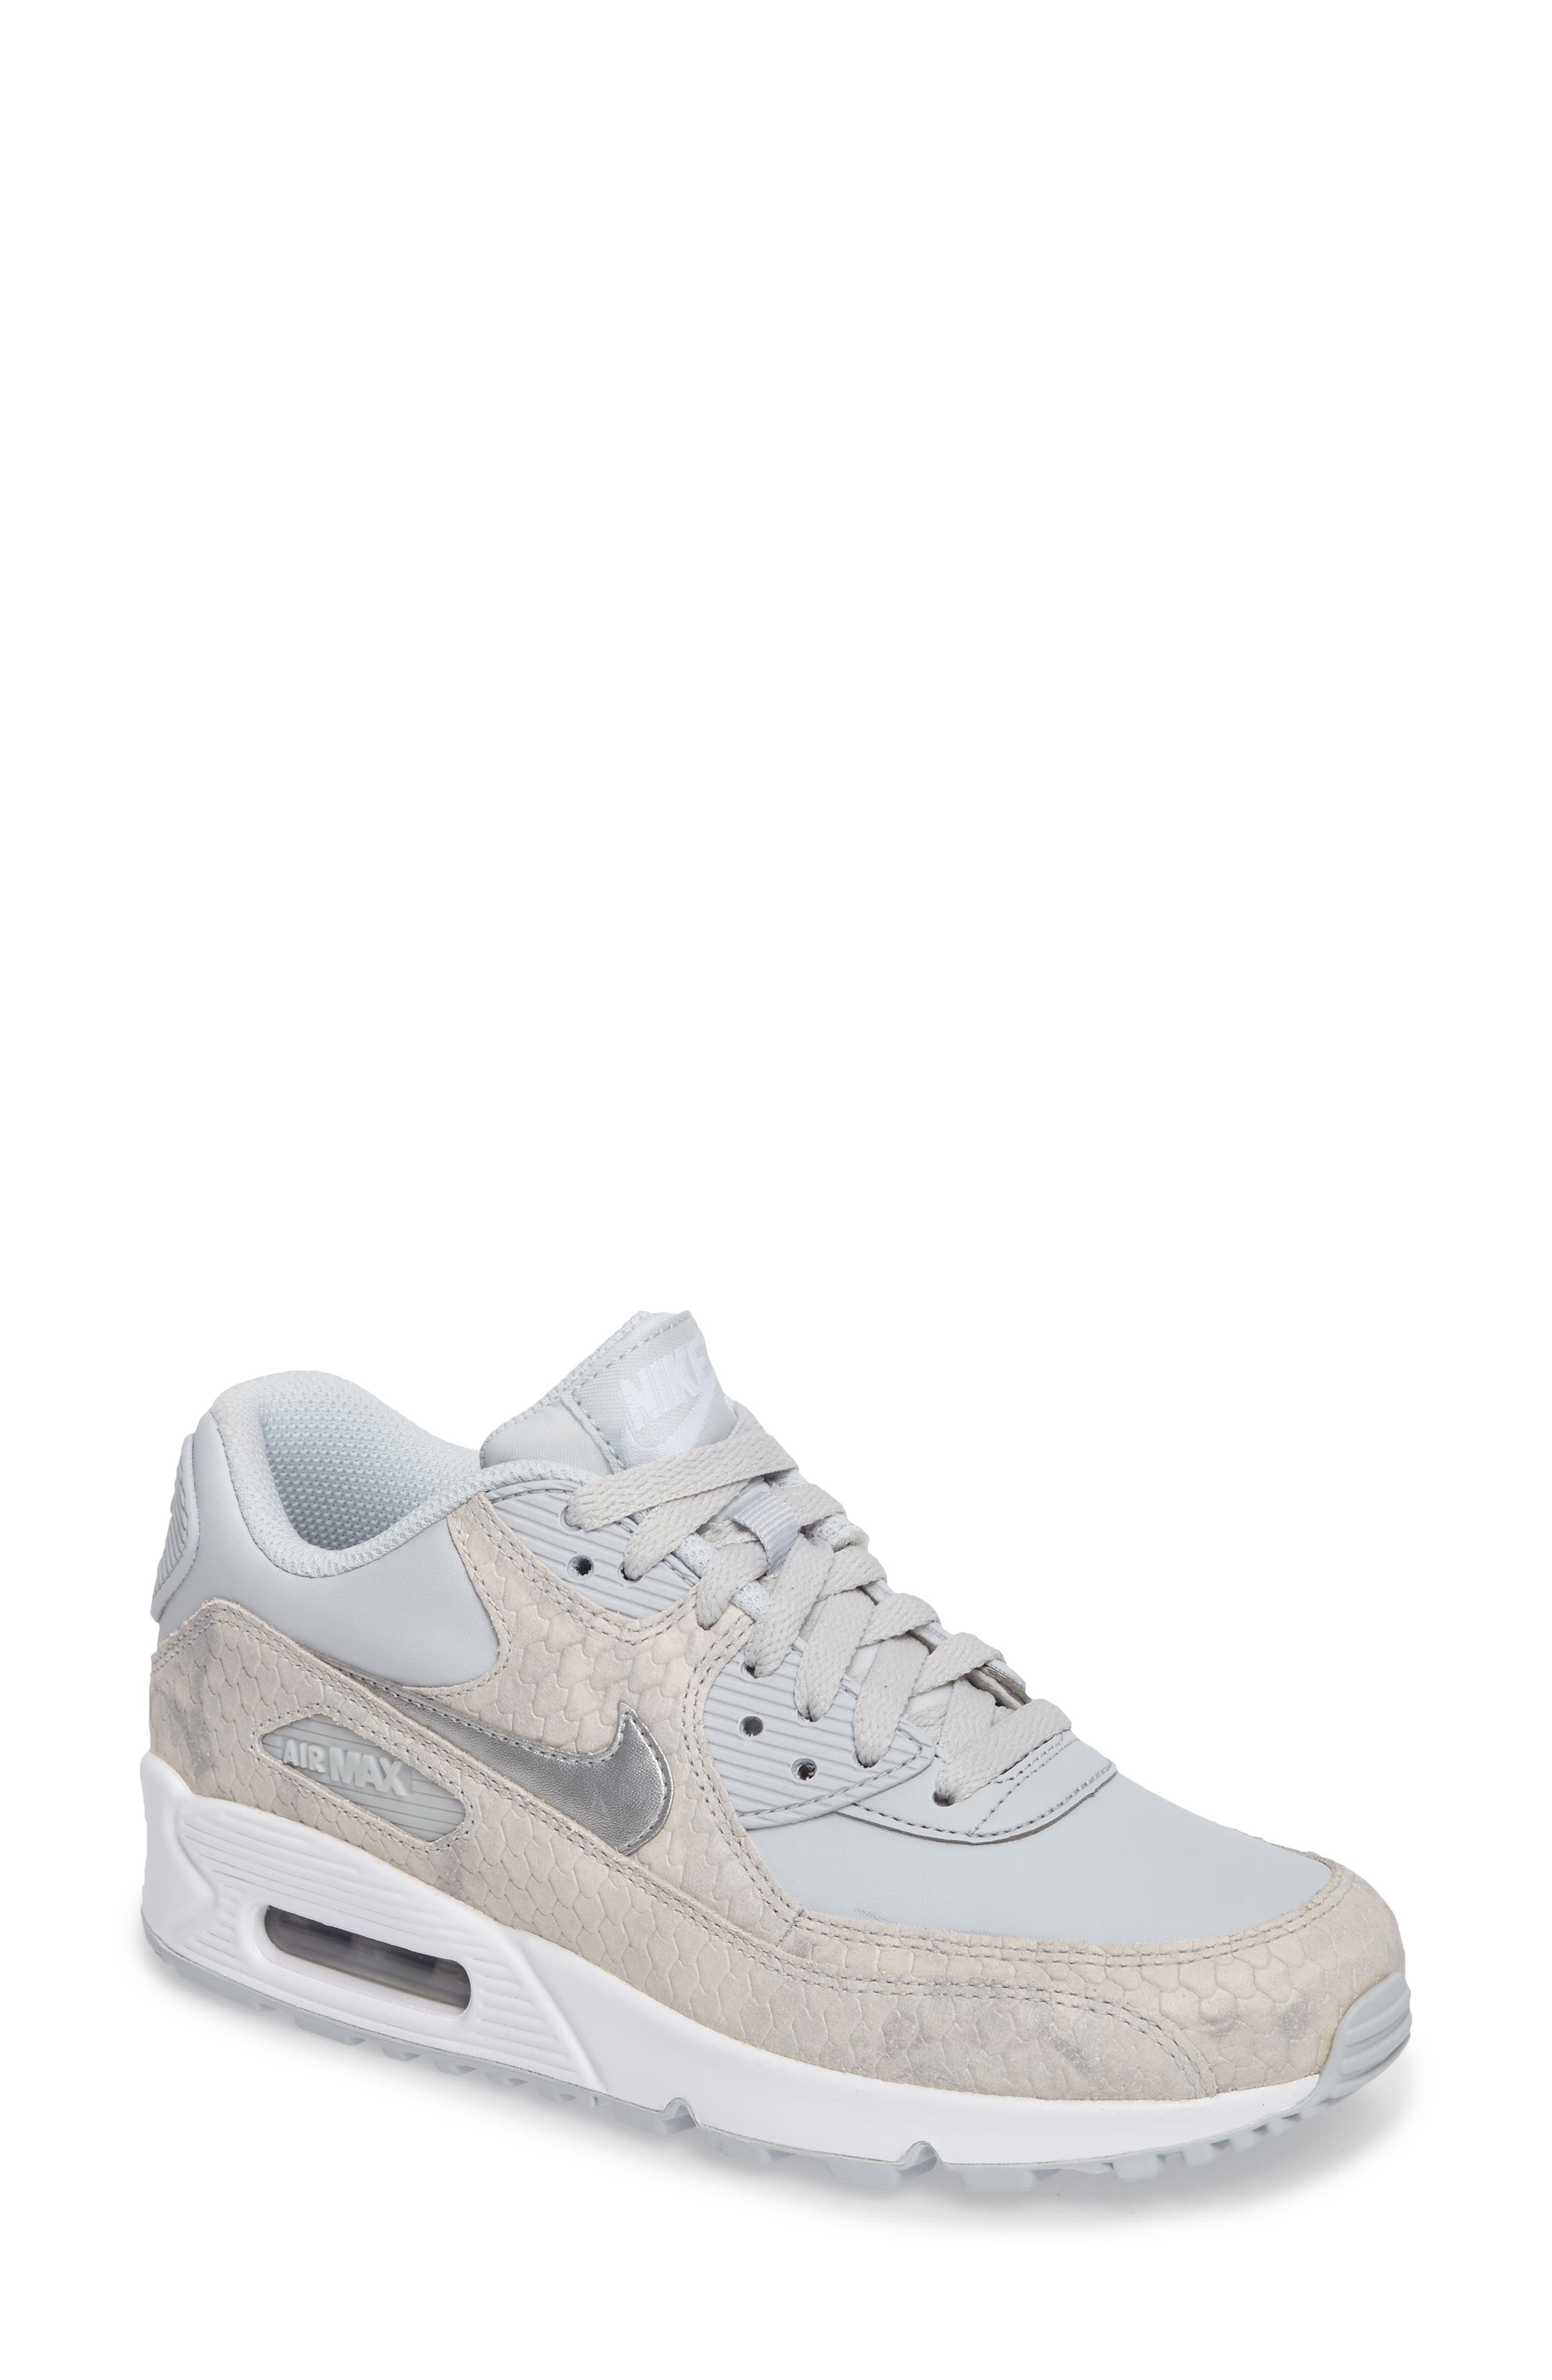 Main Image - Nike Air Max 90 Embossed Premium Sneaker (Women)